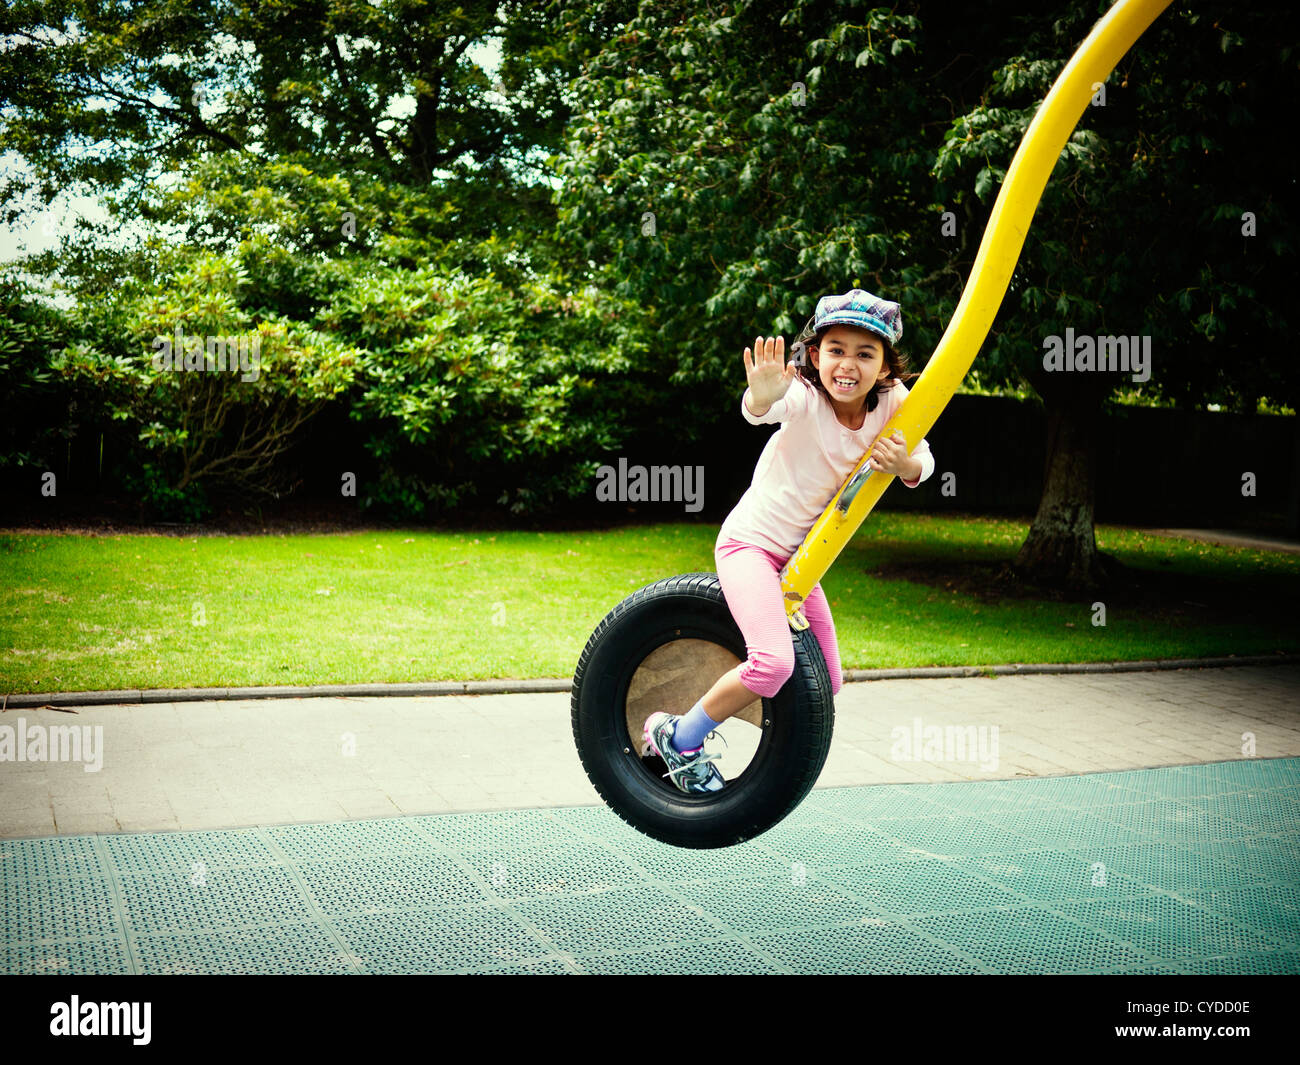 Girl waves as she rides roundabout at park. - Stock Image